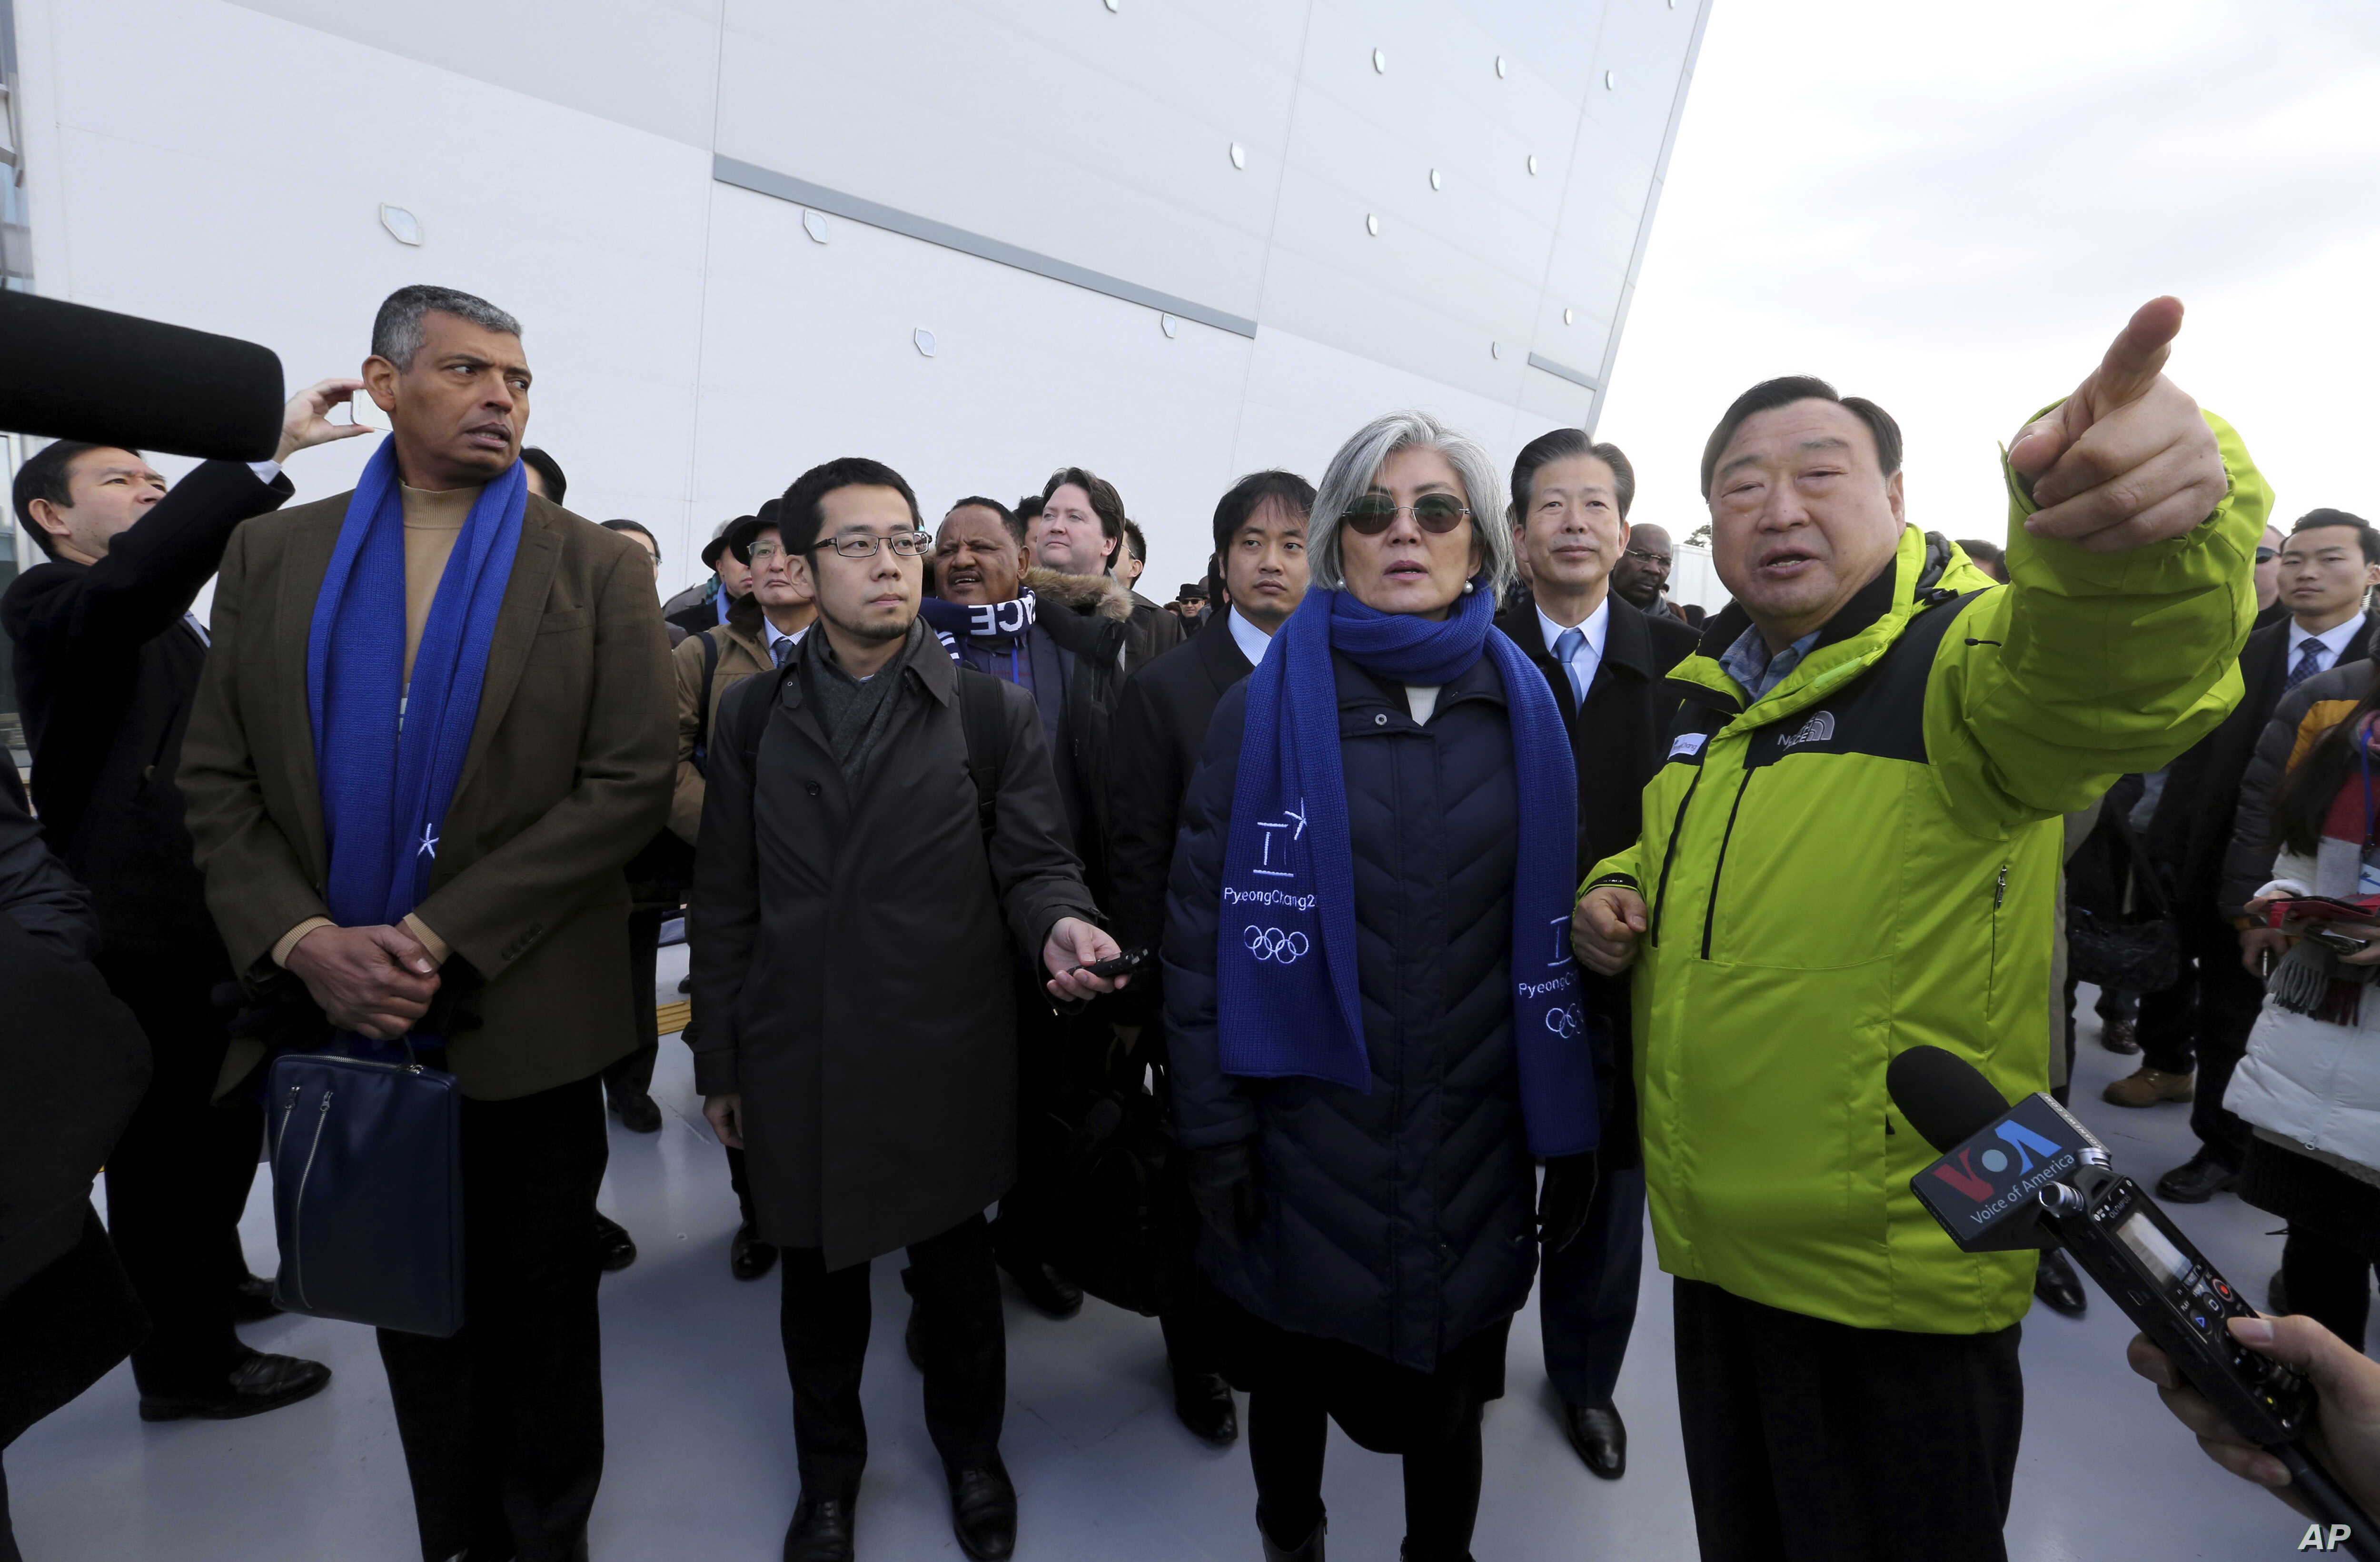 U.S. Gen. Vincent Brooks, left, commander of Combined Forces Command, South Korean Foreign Minister Kang Kyung-wha, third from right, and Natsuo Yamaguchi, second from right, head of the Komeito party that forms a governing coalition with Japanese Pr...